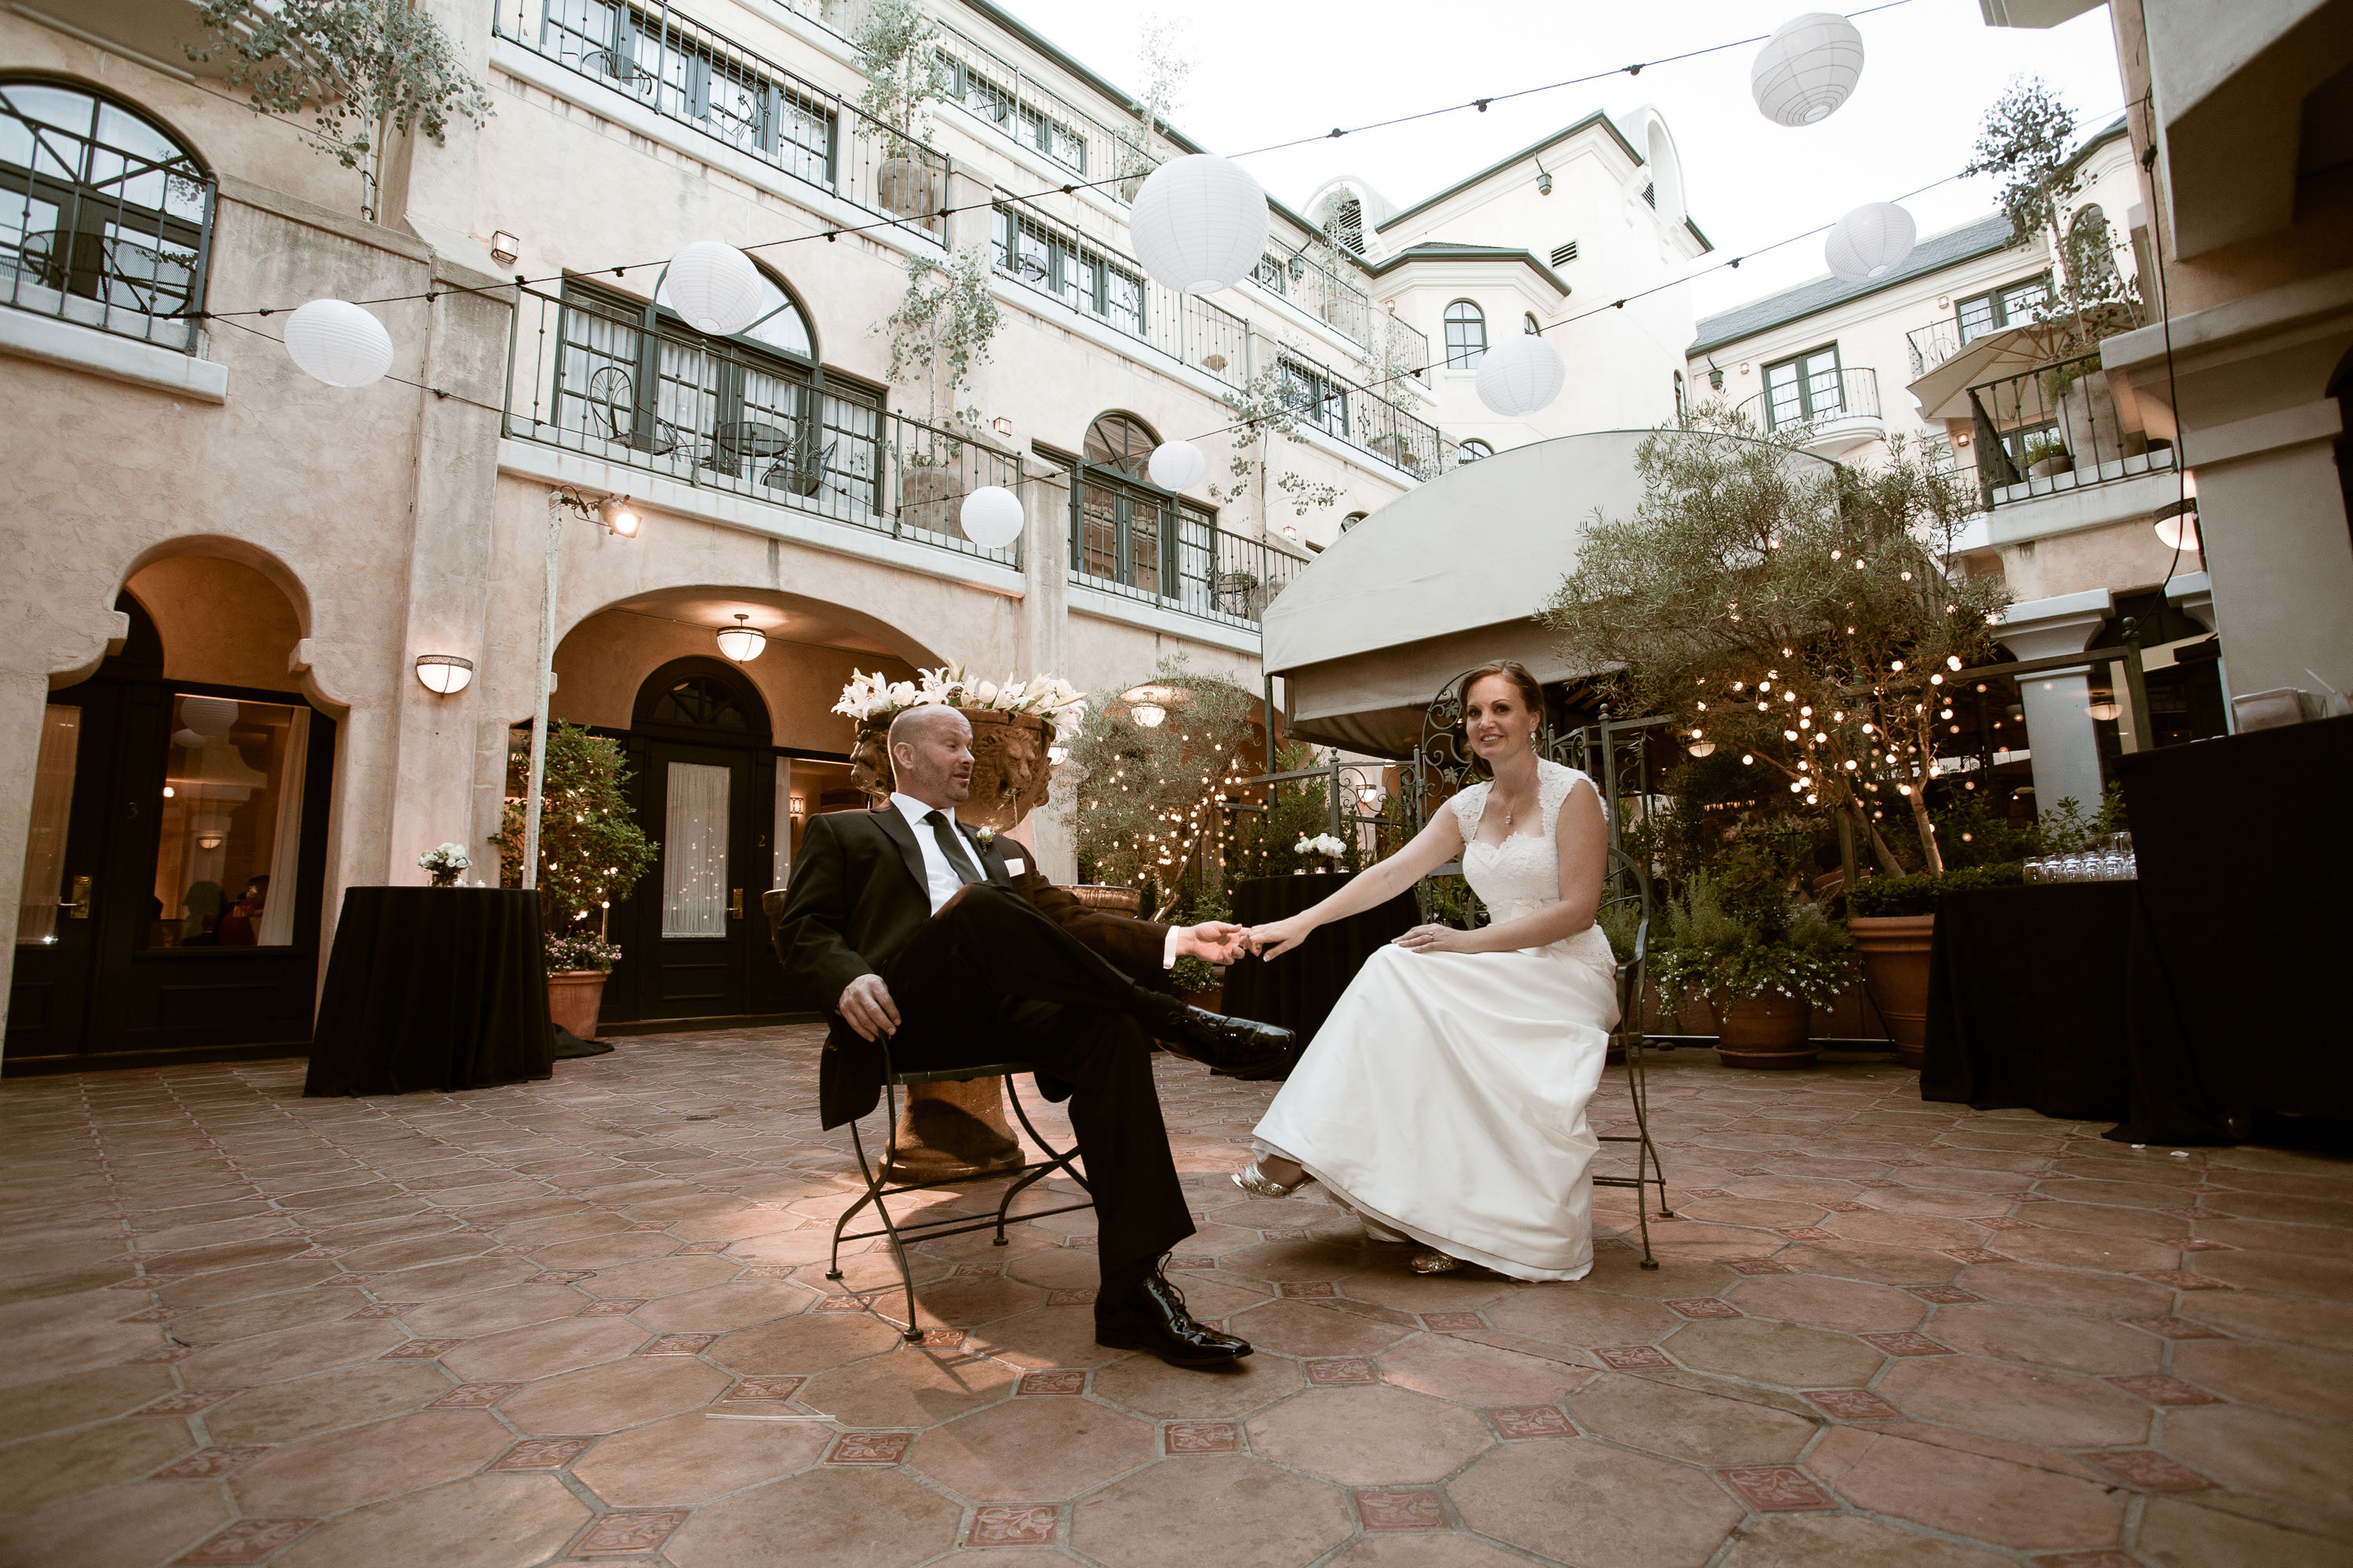 garden court hotel. The Bride And Groom Relax Together In Courtyard At Garden Court Hotel Palo